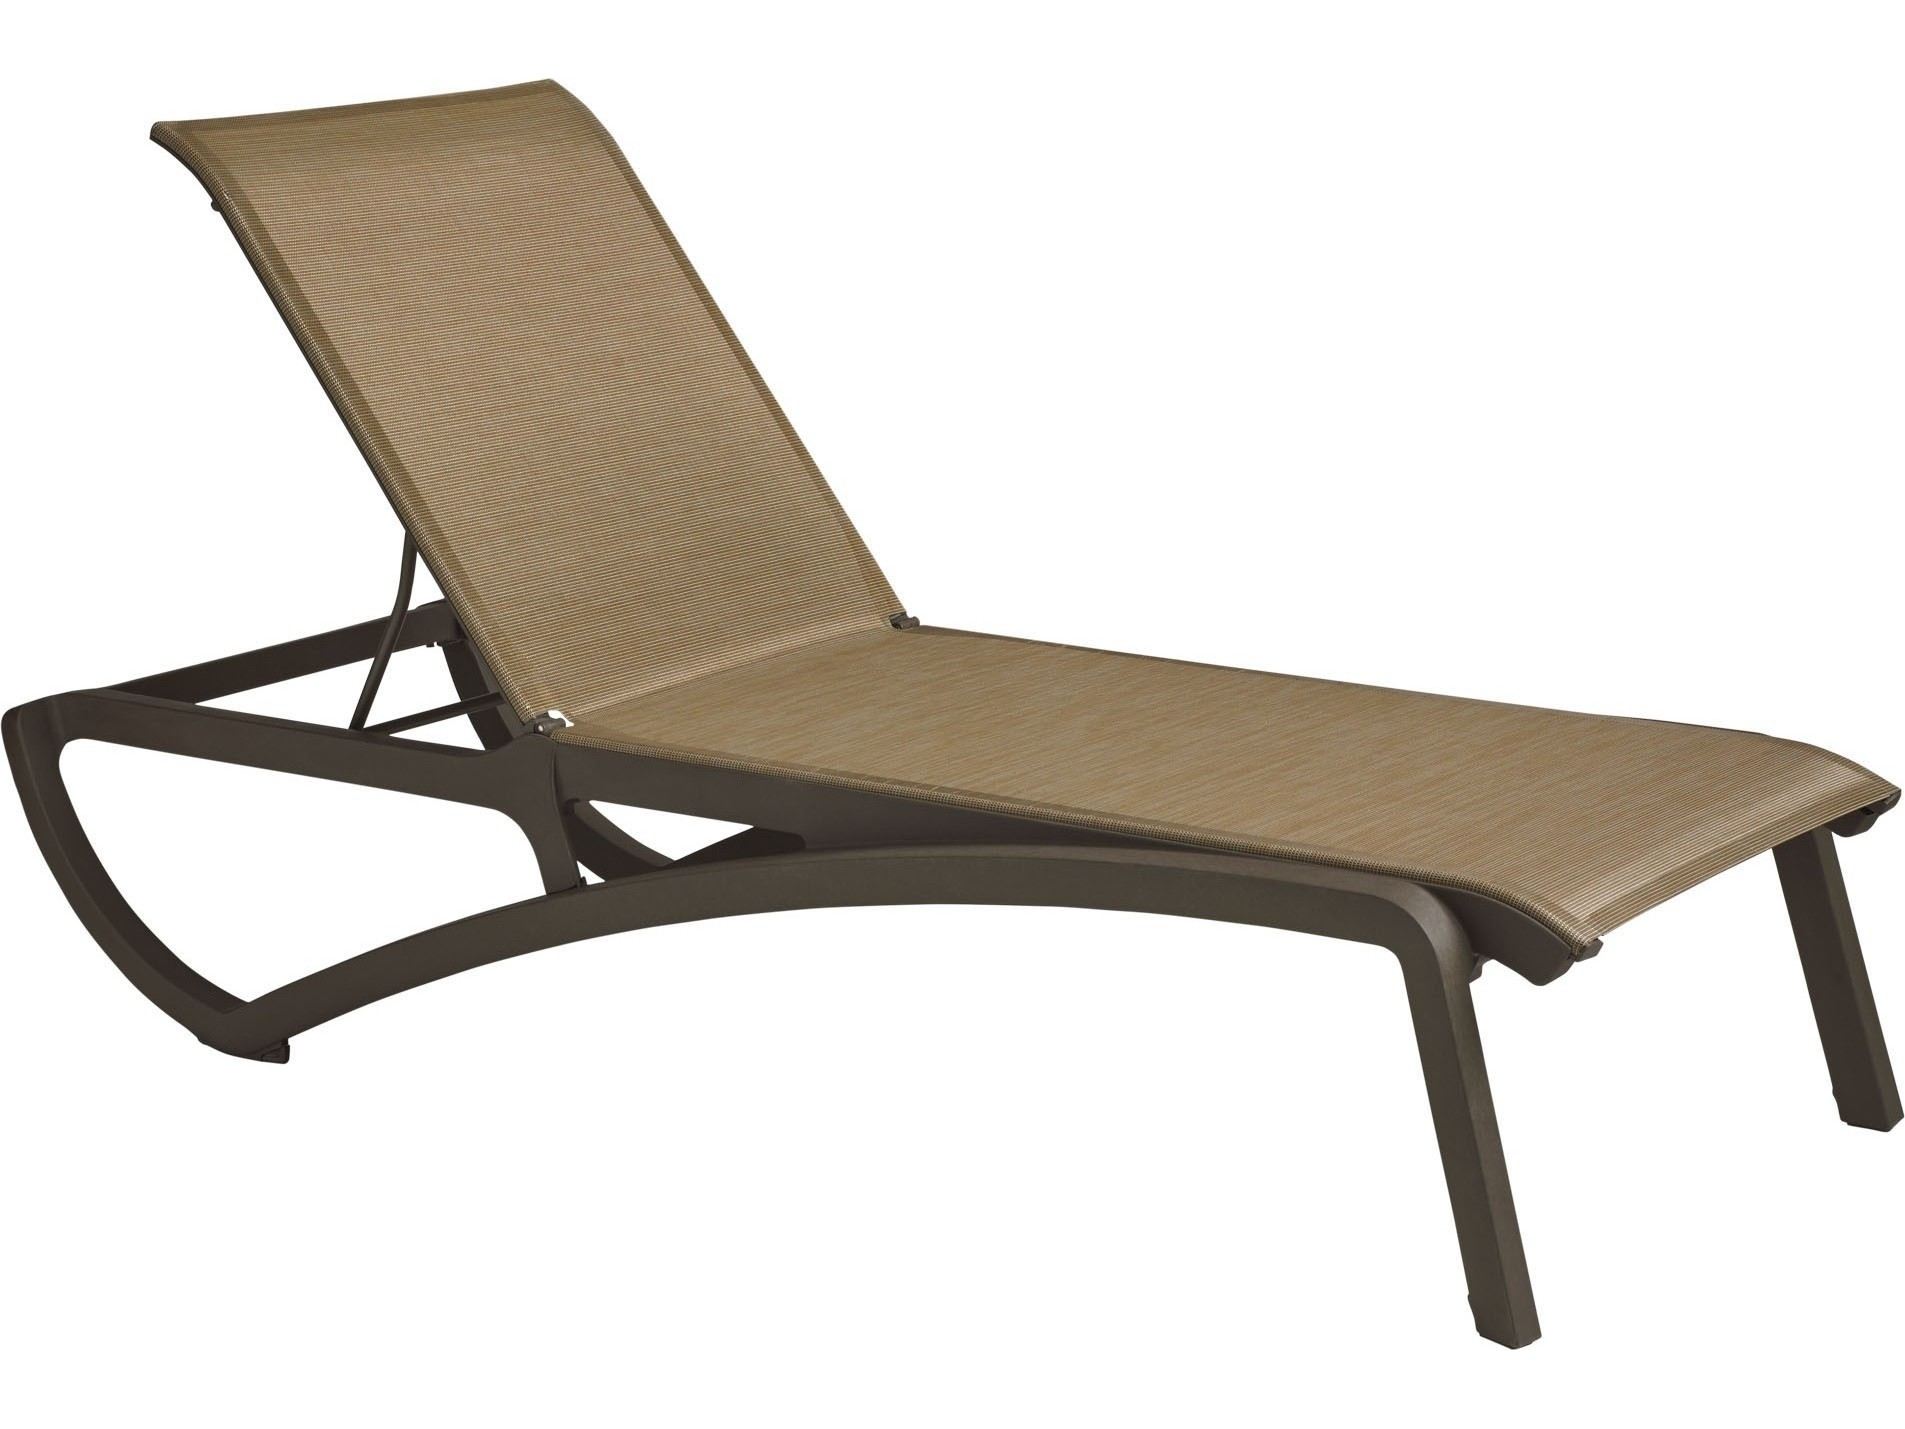 grosfillex sunset chaise lounge sold in 12 us346599. Black Bedroom Furniture Sets. Home Design Ideas